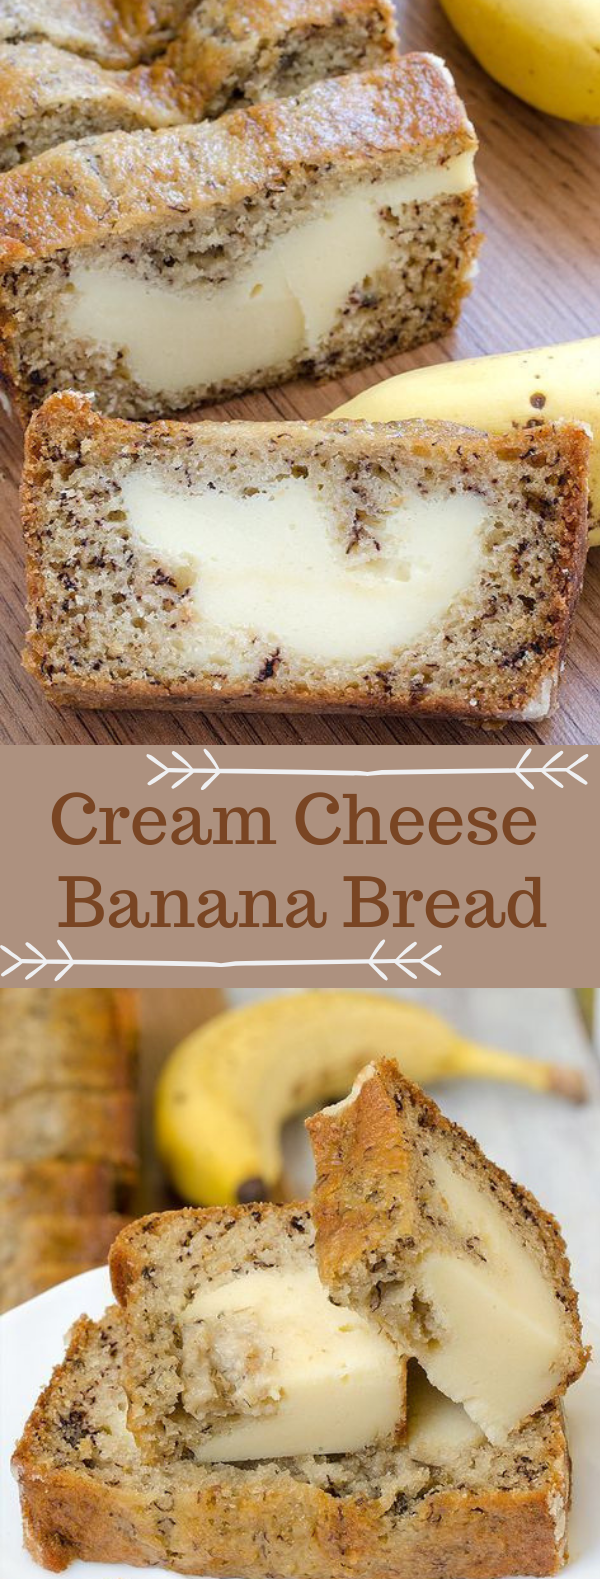 Cream Cheese Banana Bread #banana #cake